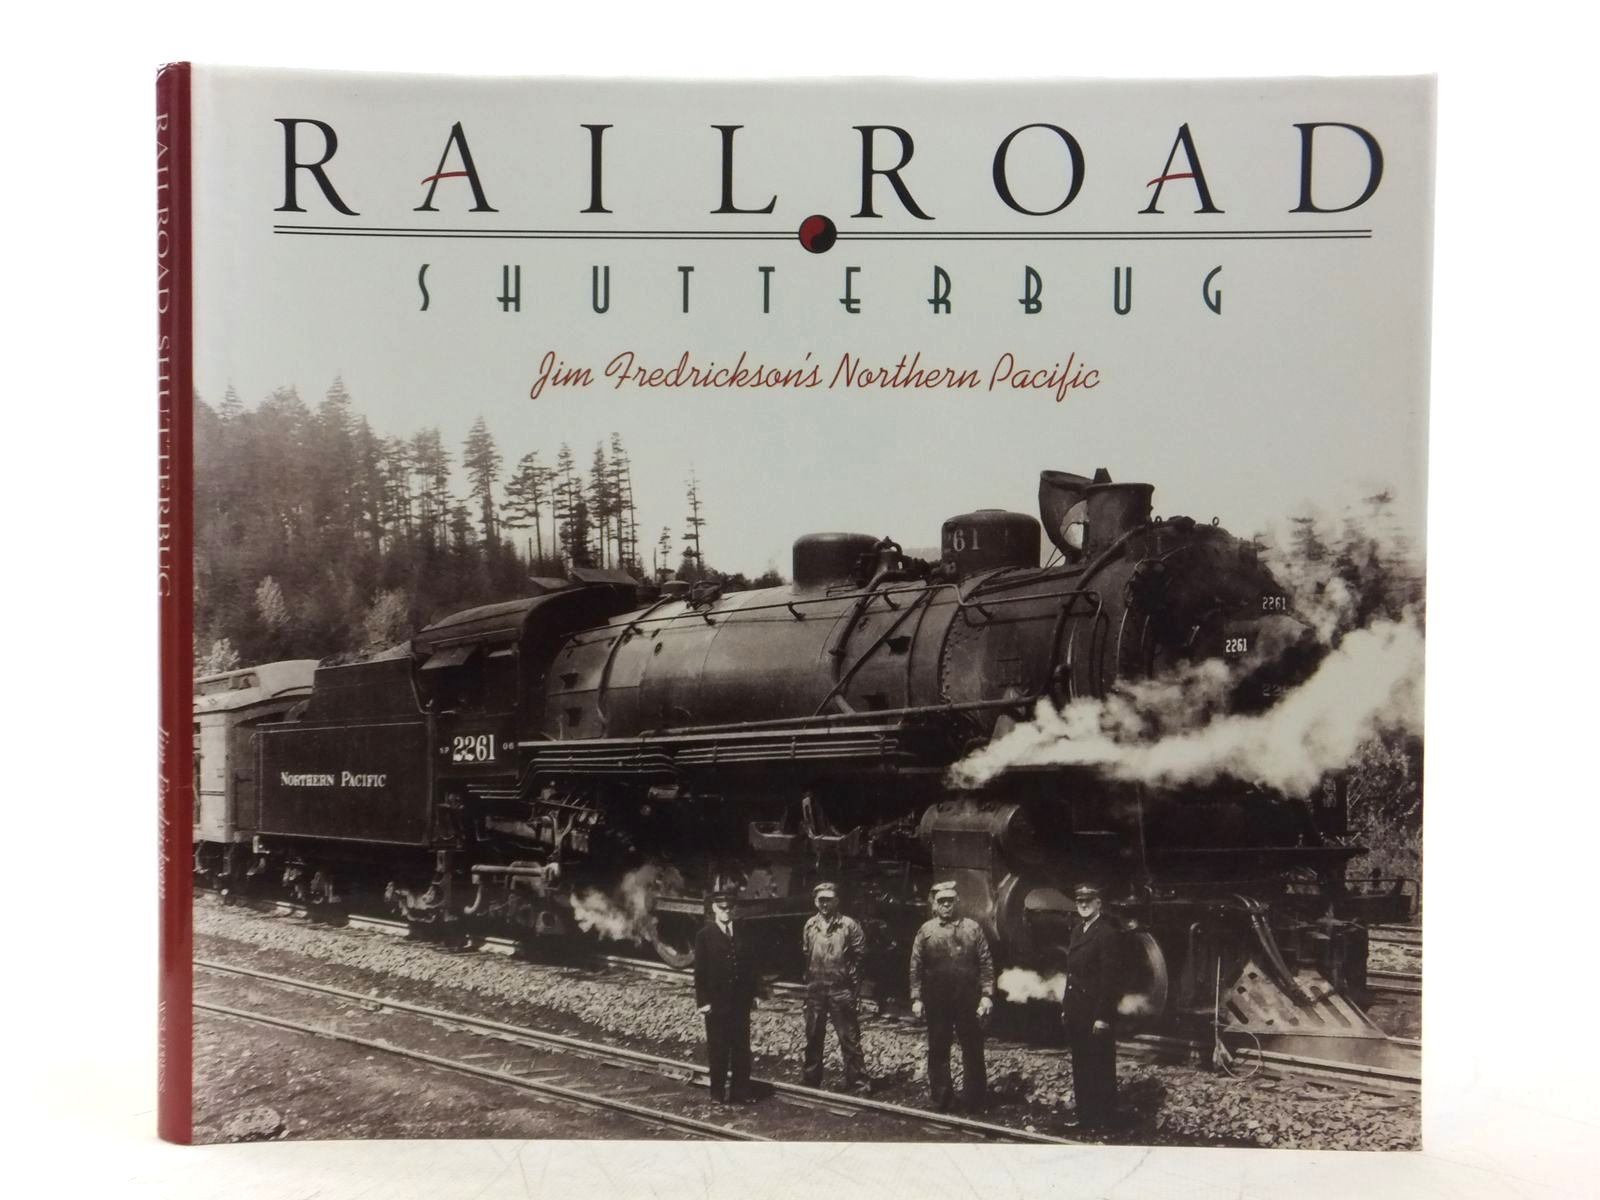 Photo of RAILROAD SHUTTERBUG written by Fredrickson, Jim published by Washington State University Press (STOCK CODE: 1607621)  for sale by Stella & Rose's Books